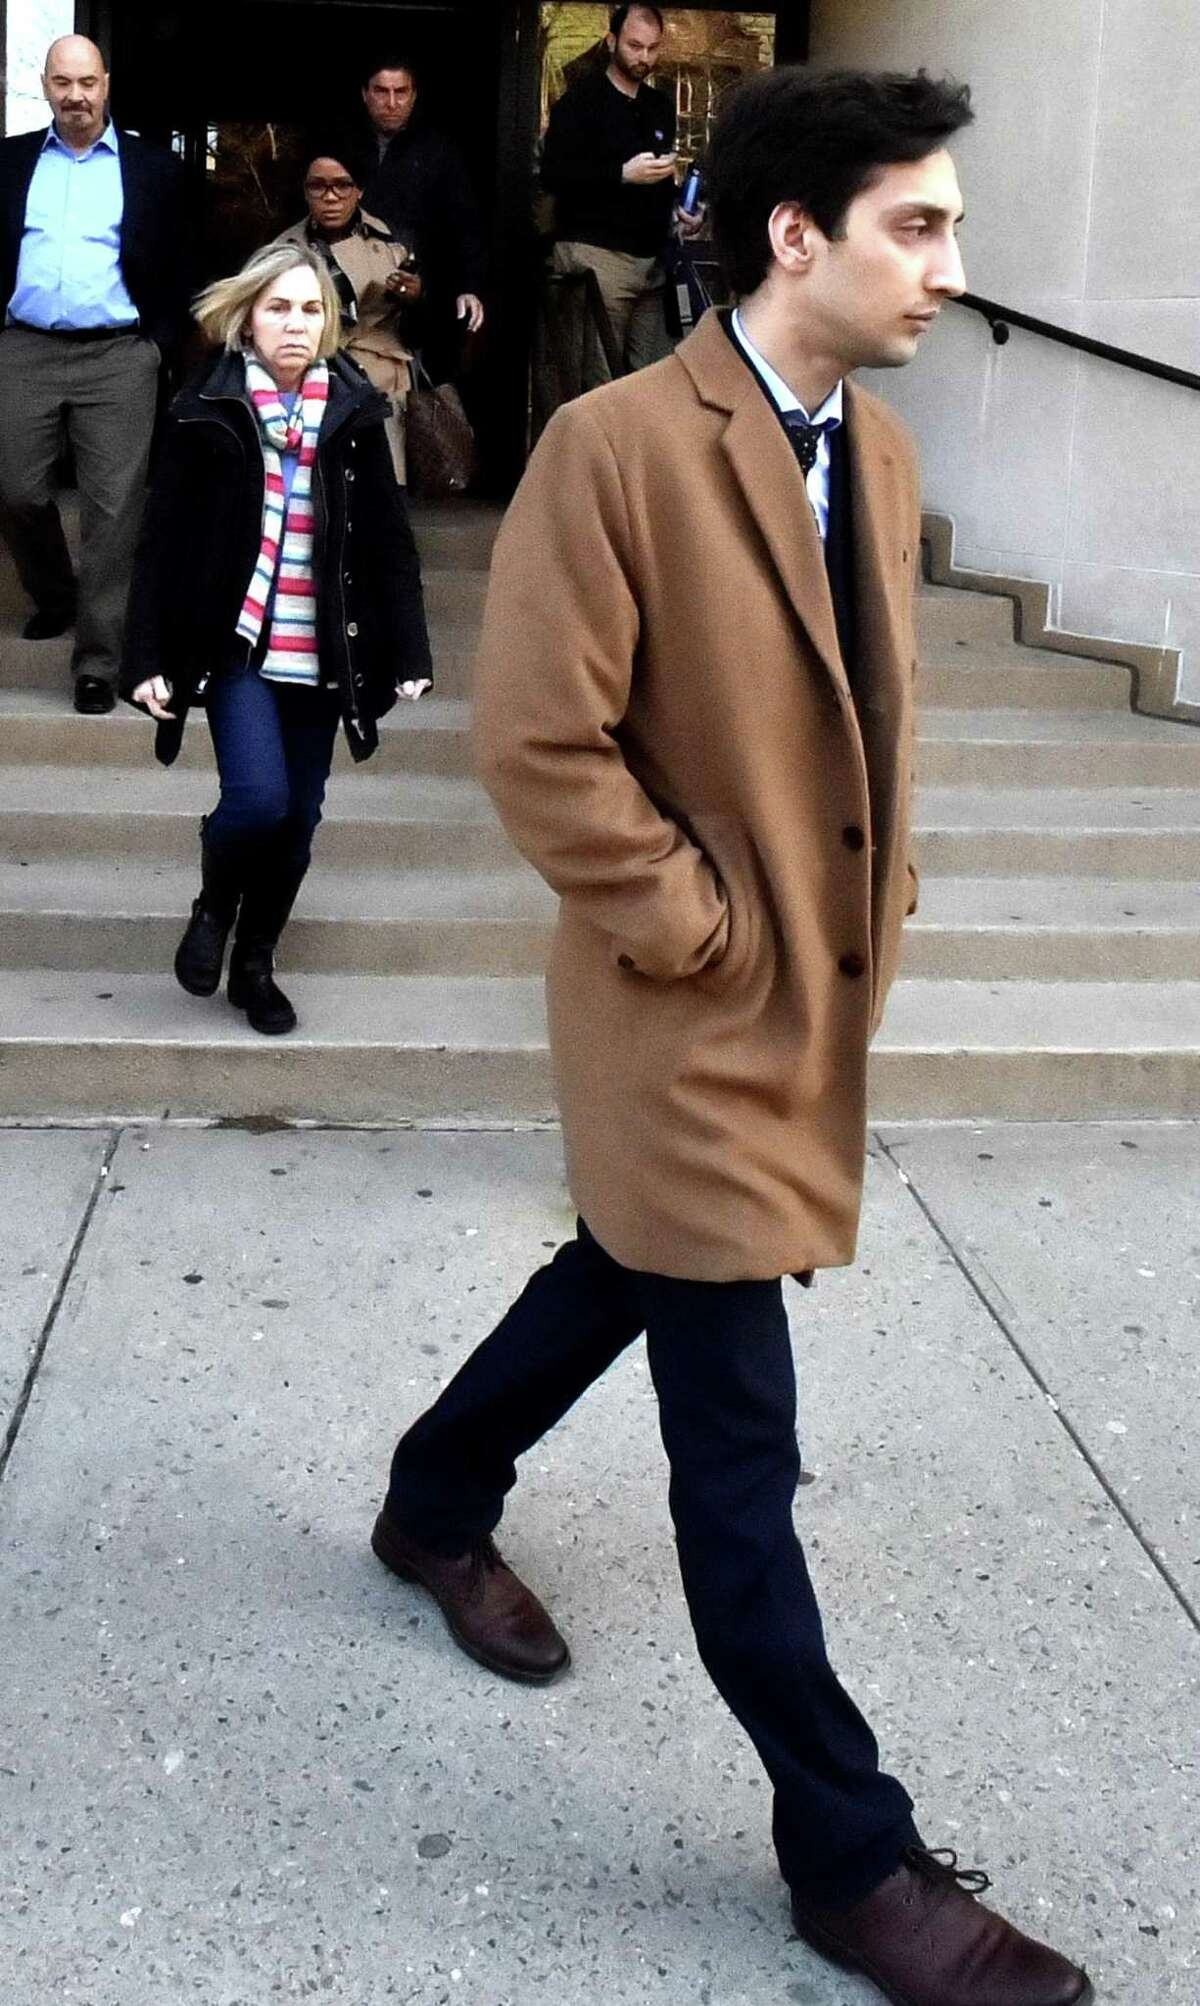 New Haven, Connecticut - Tuesday, February 27, 2018: Saifullah Khan, a former Yale student on trial for allegedly sexually assaulting a female classmate, leaves New Haven Superior Court Tuesday afternoon.